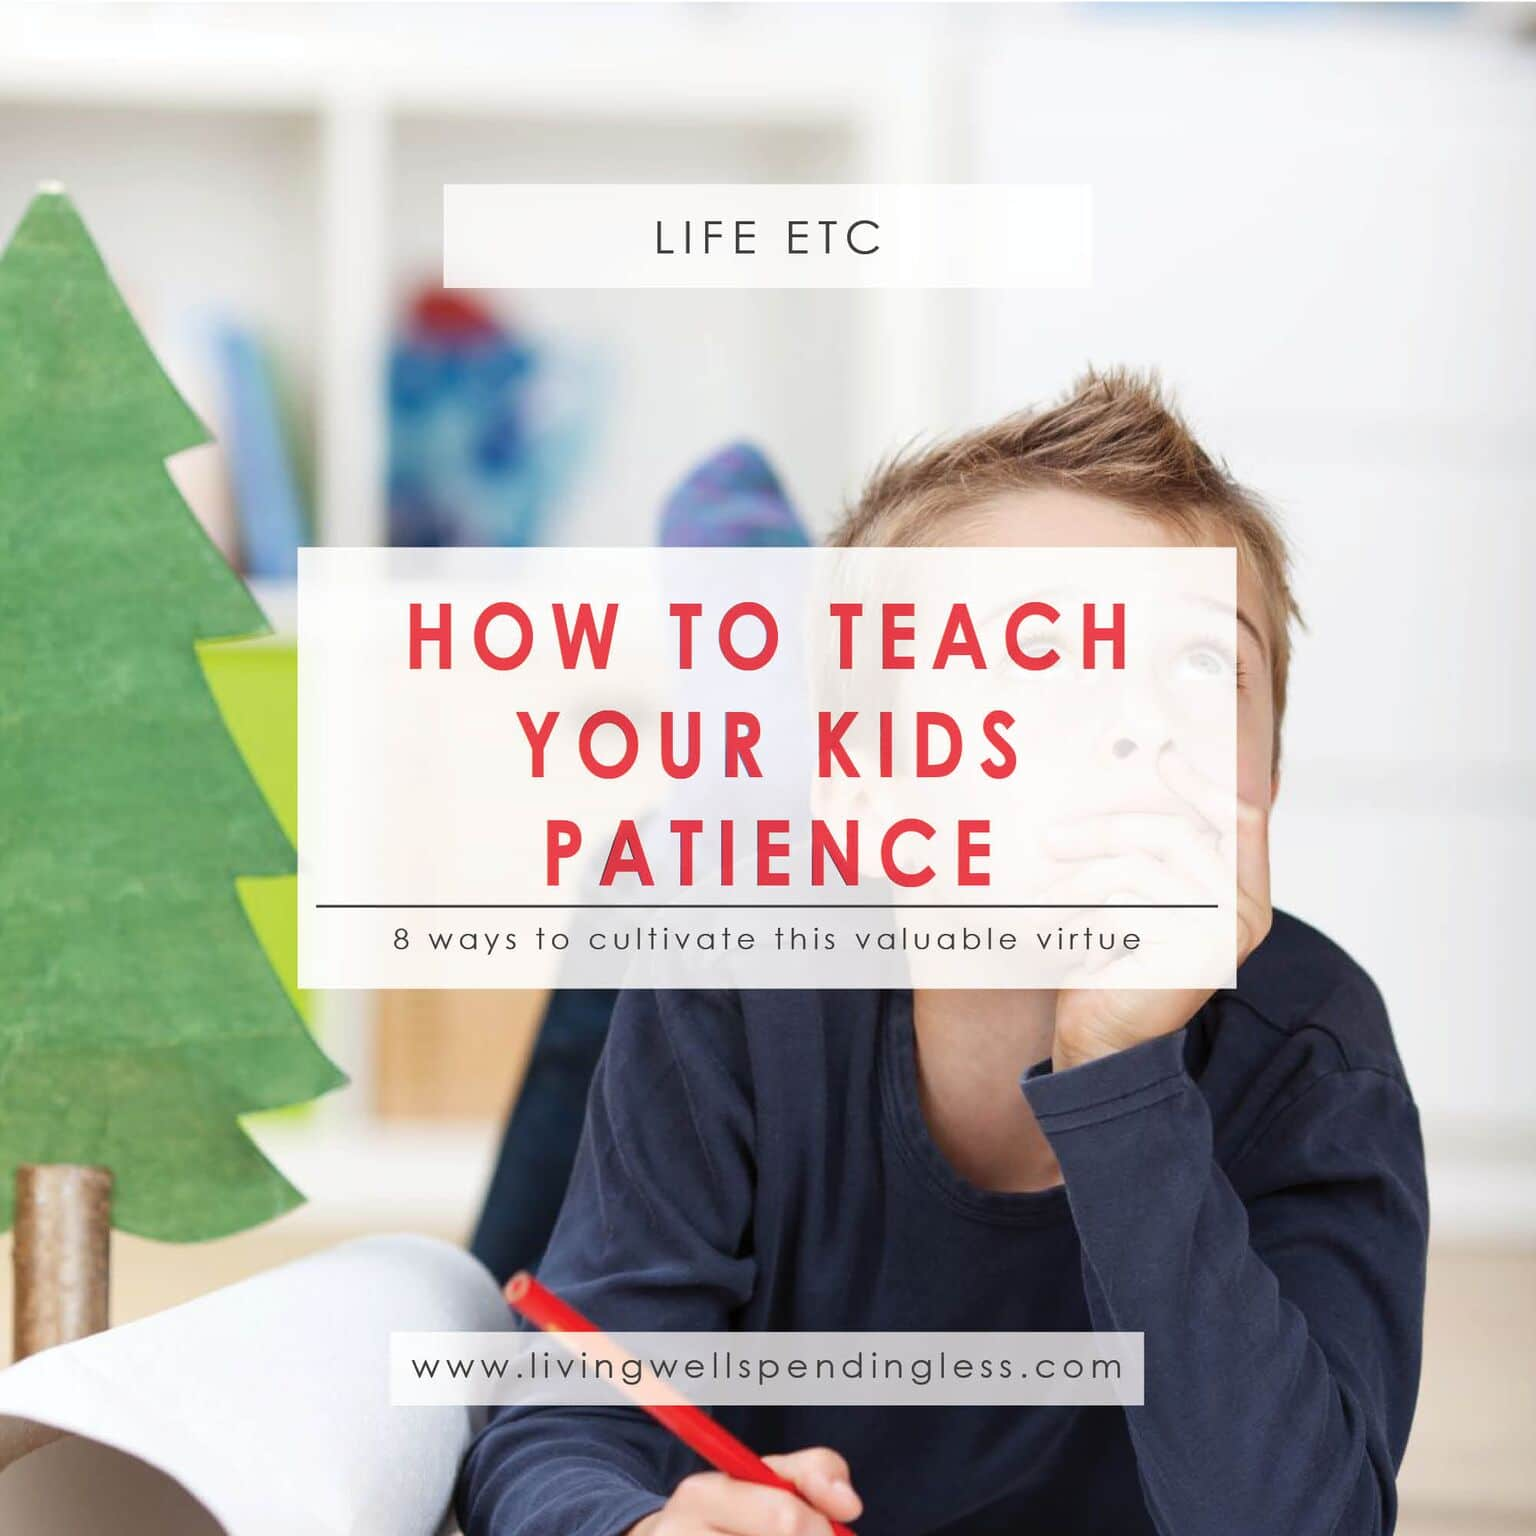 Teach Your Kids Patience | Virtuous Children | Virtues in the Home | Patience | Instant Gratification